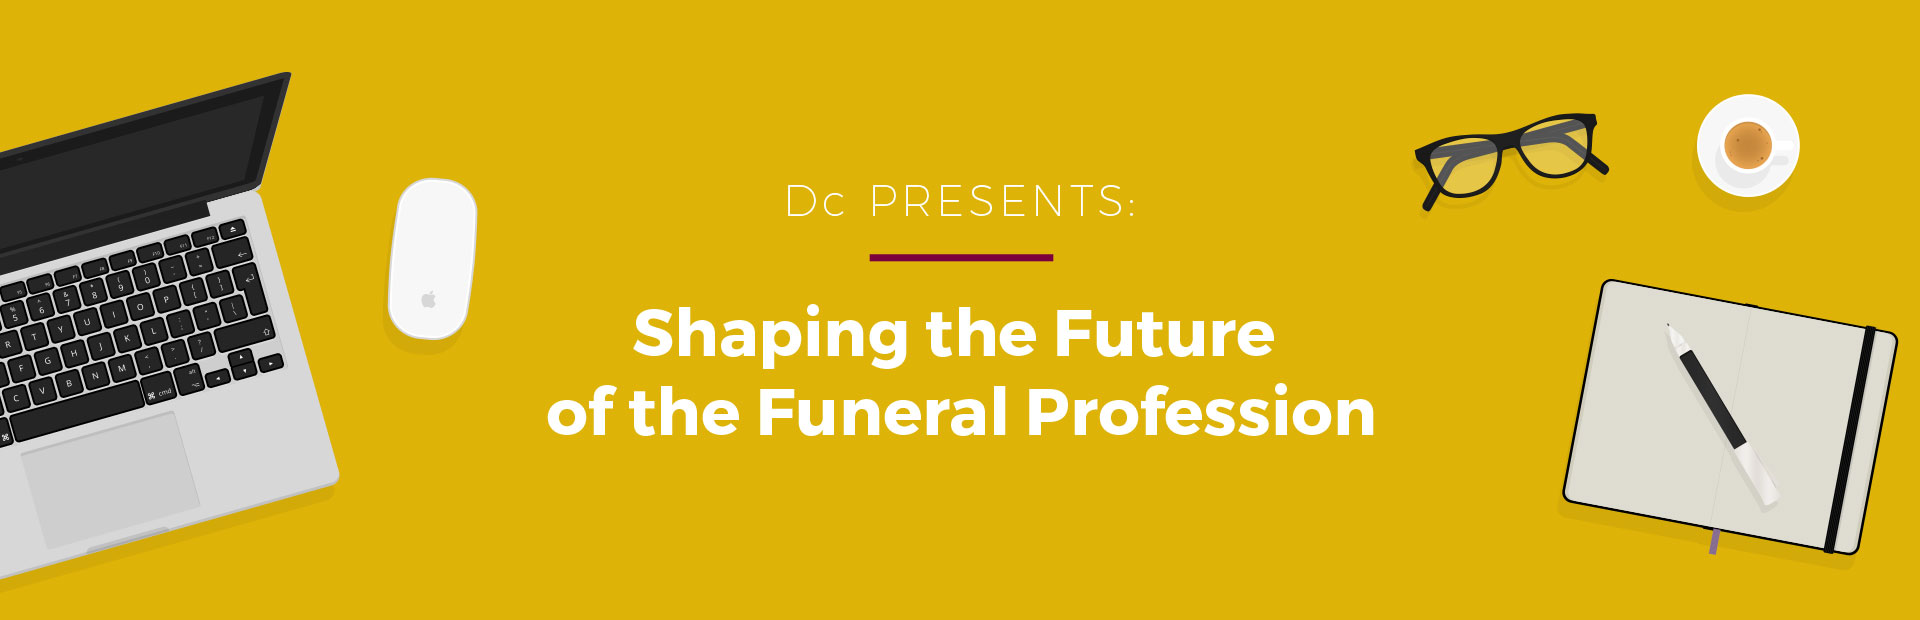 Dc presents: Shaping the Future of the Funeral Profession